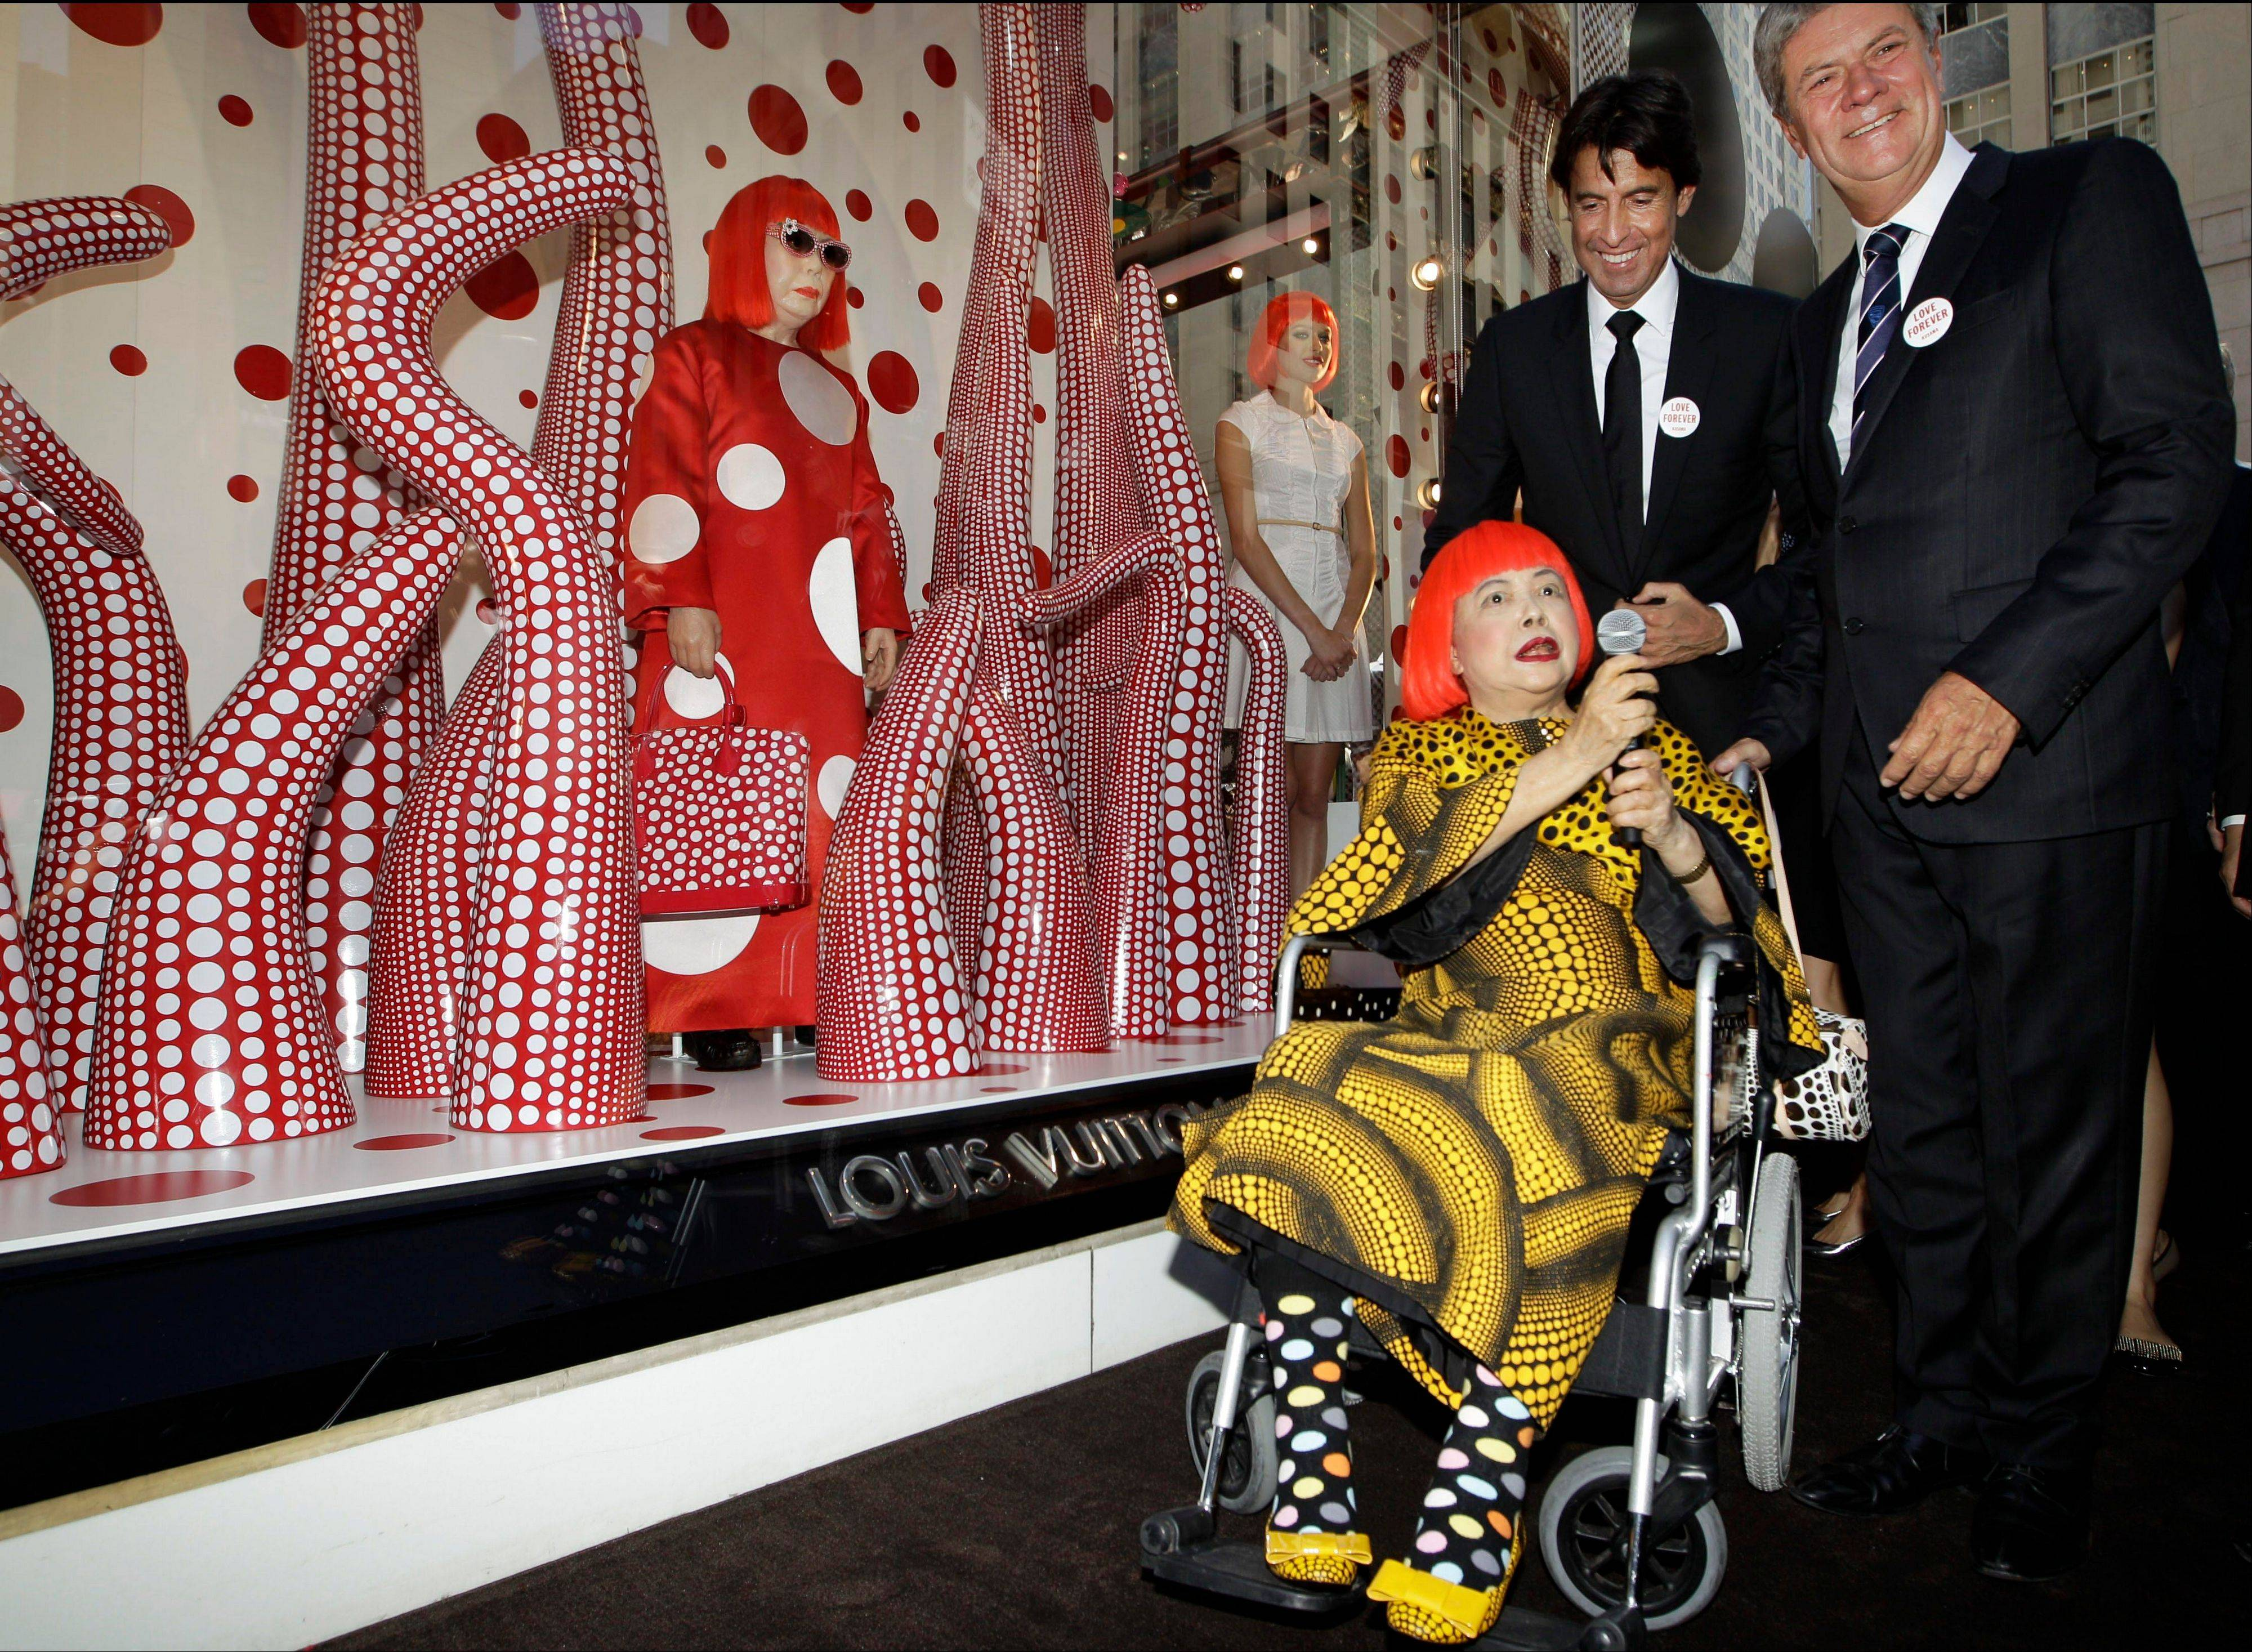 Japanese artist Yayoi Kusama in a red wig speaks on July 10 with Louis Vuitton's second in command, Jordi Konstans, left, and CEO Yves Carcelle, right, in front of the windows of Vuitton's flagship store for the unveiling of a new collaborative collection by Vuitton creative designer Marc Jacobs and Kusama in New York. Kusama's signature splash of dots has now arrived in the realm of fashion in a new collection from French luxury brand Louis Vuitton -- bags, sunglasses, shoes and coats. The latest Kusama collection is showcased at its boutiques around the world, including New York, Paris, Tokyo and Singapore, sometimes with replica dolls of Kusama.